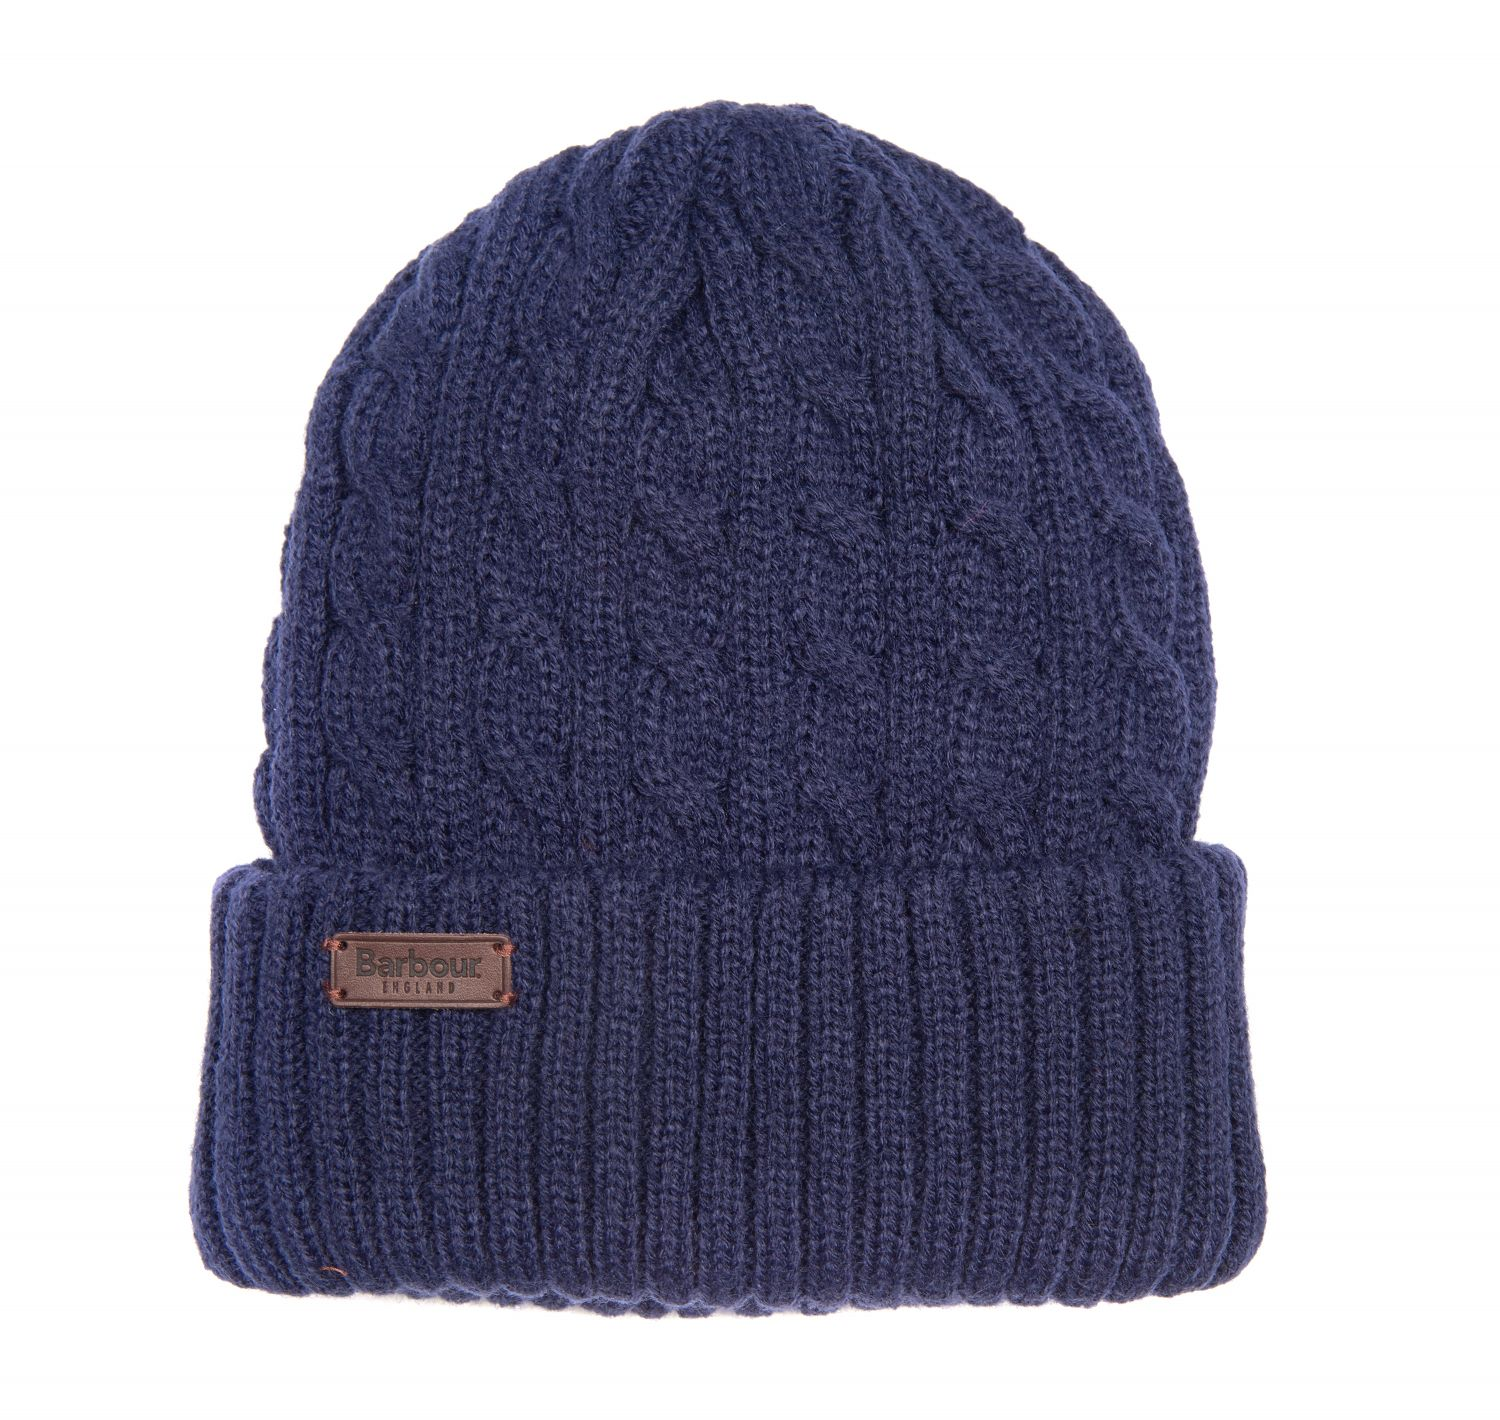 Barbour Balfron Knit Beanie Navy Barbour Lifestyle: from the Classic capsule